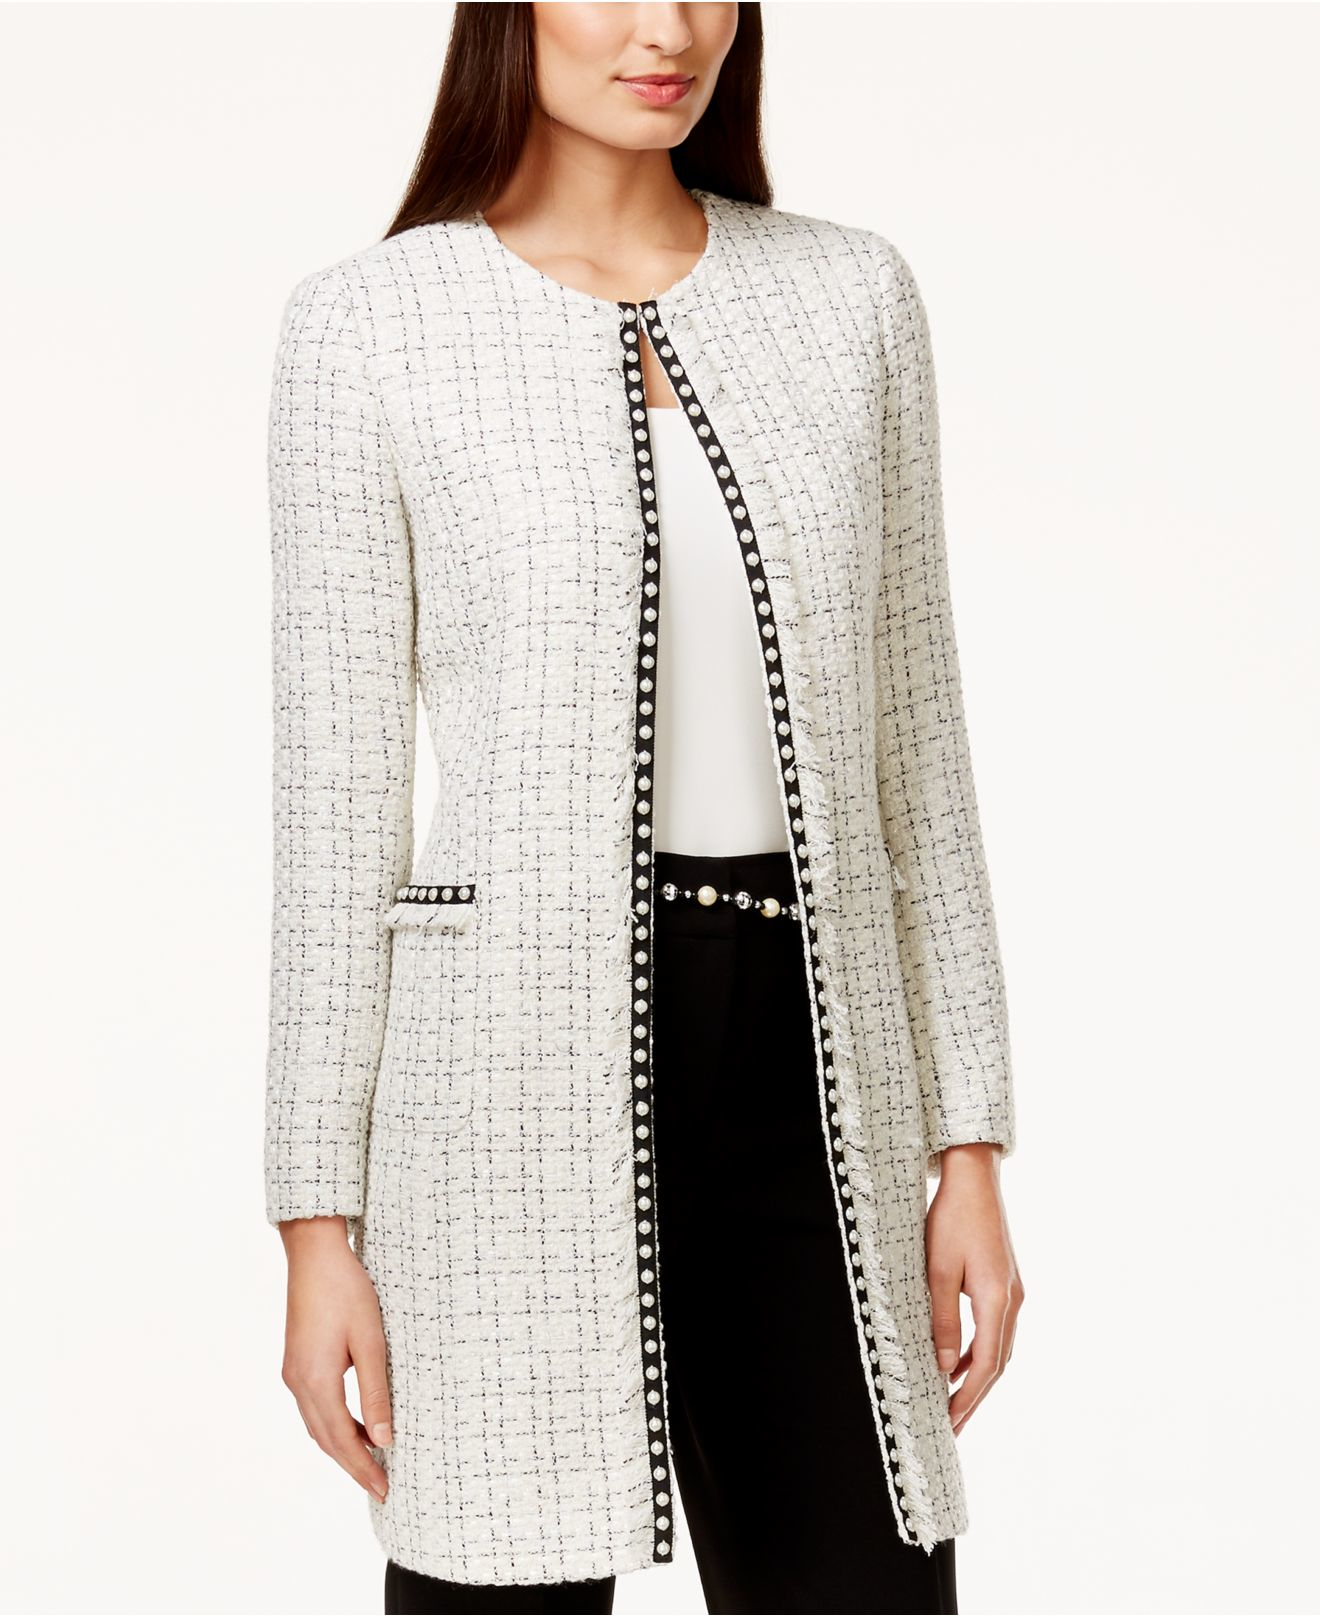 Tahari Pearl-trim Tweed Long Jacket in White | Lyst